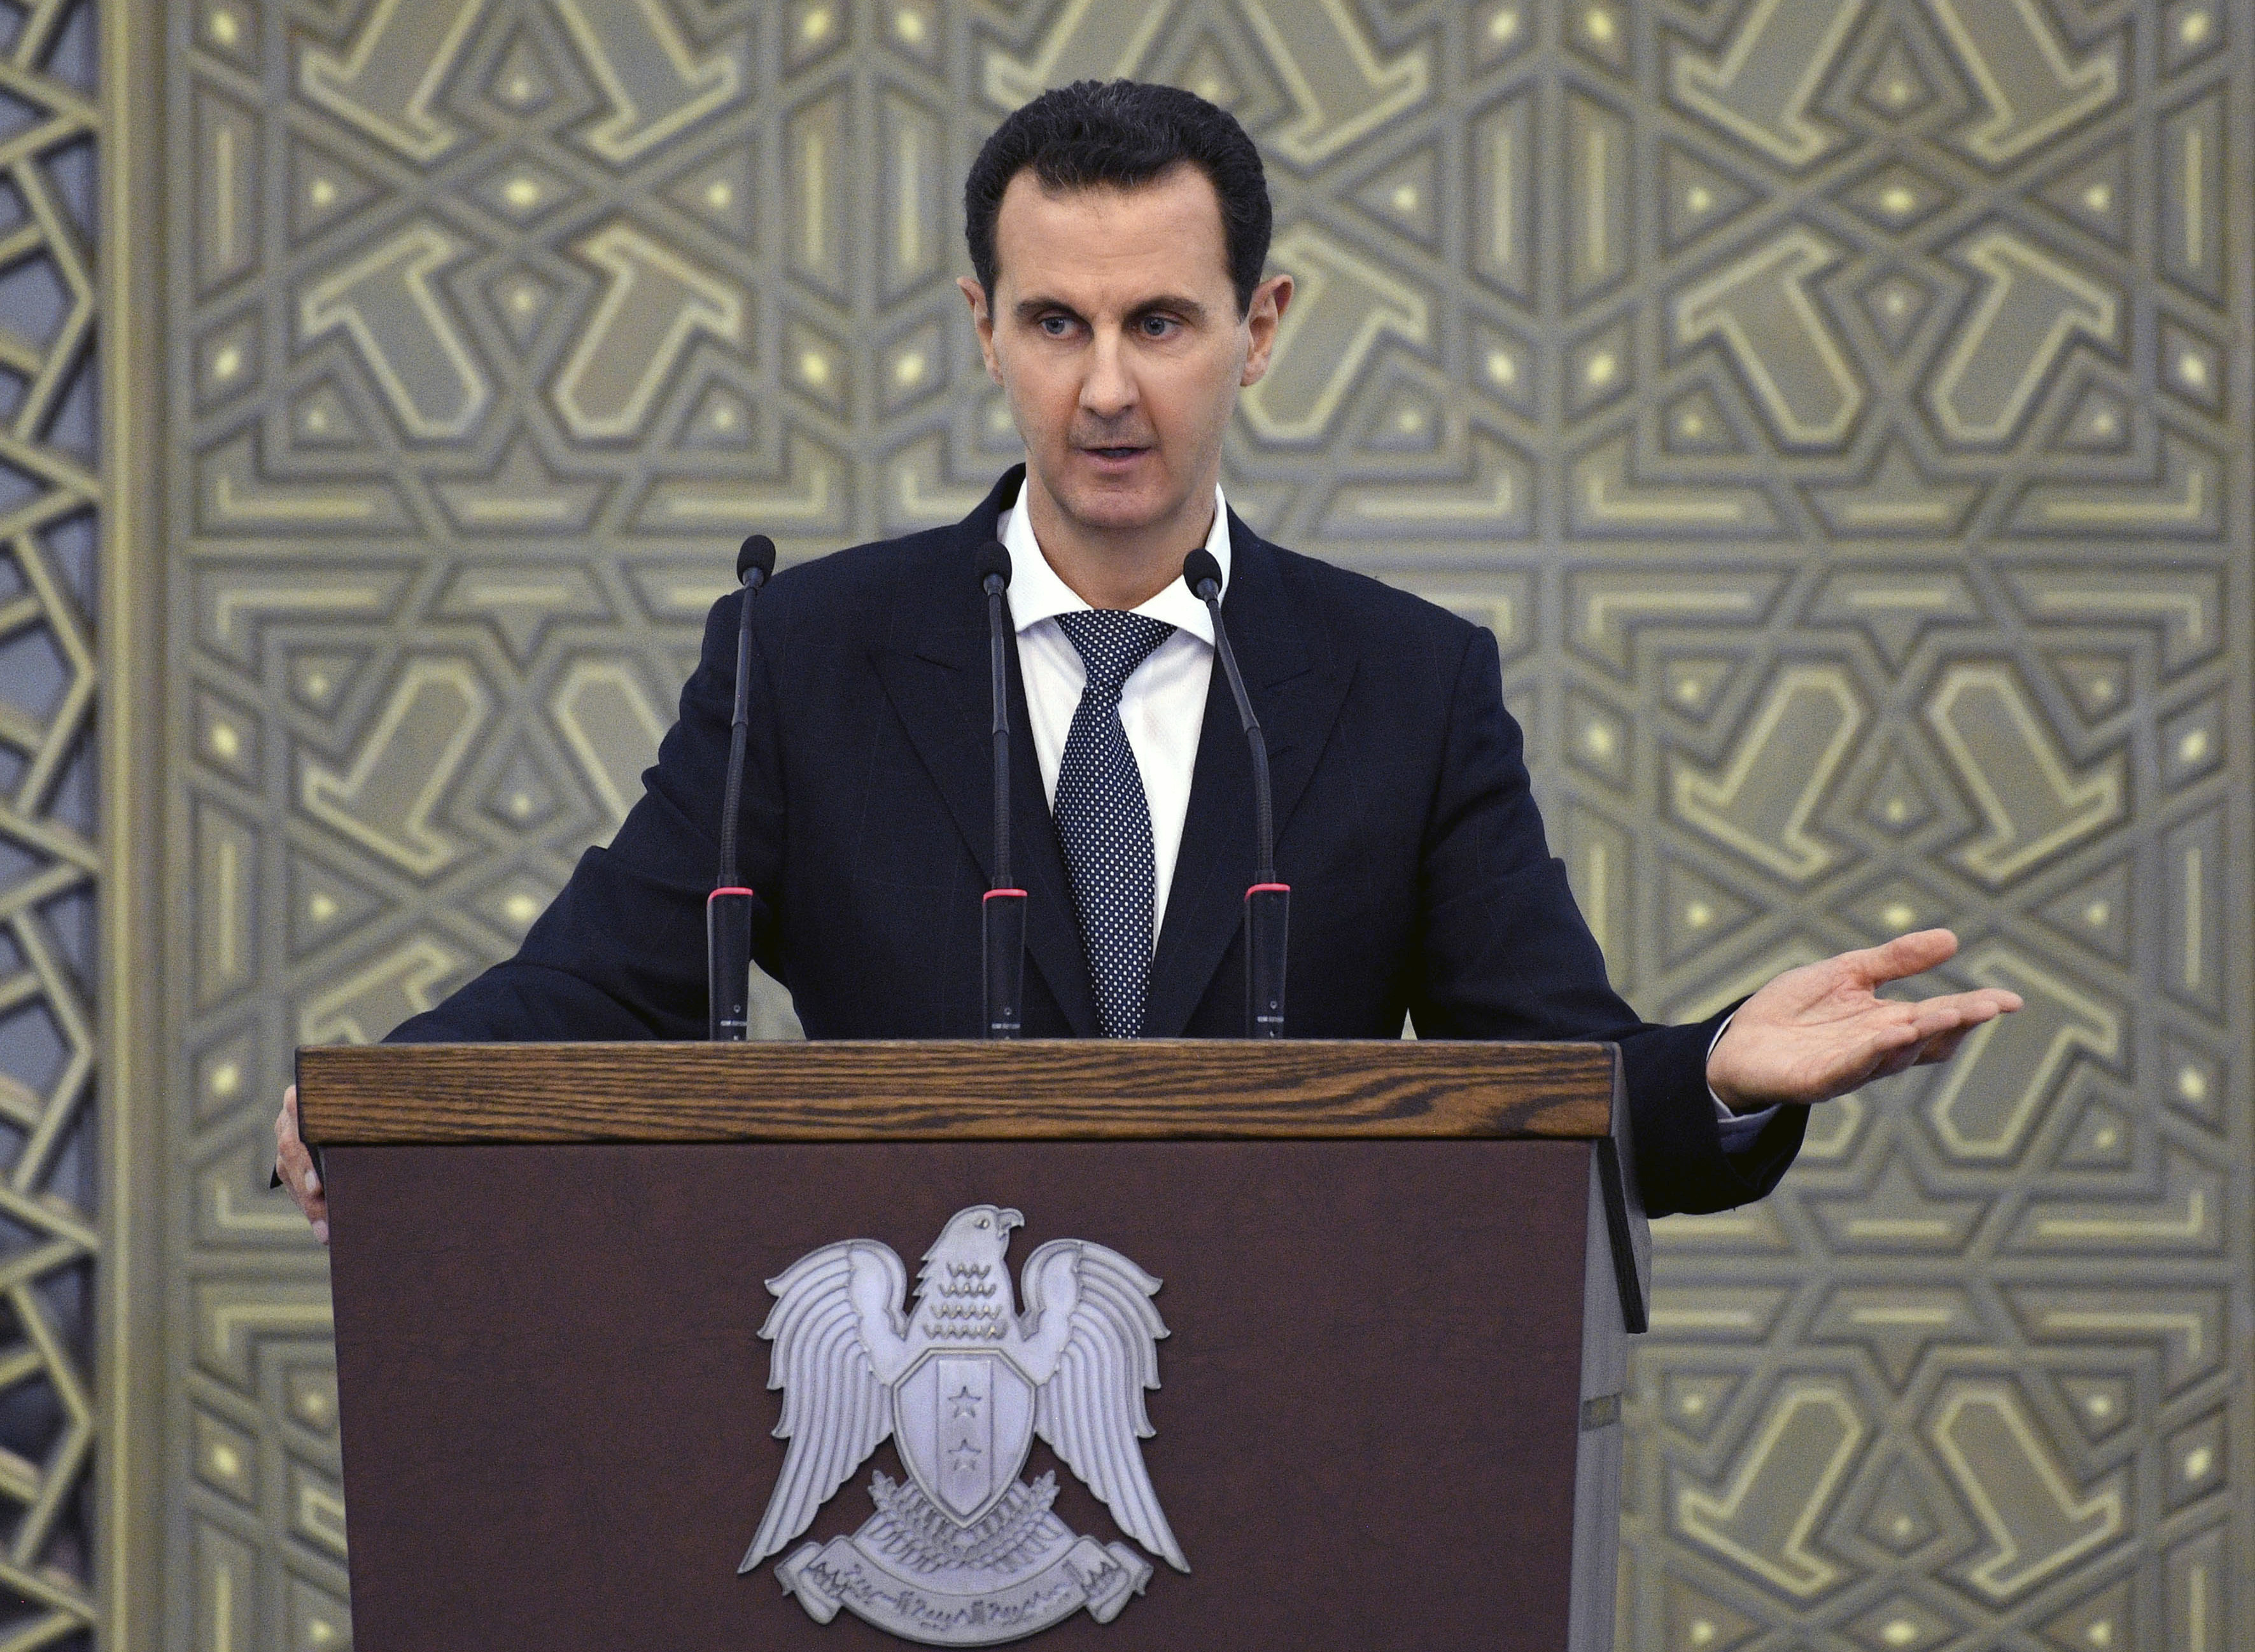 Syrian President Bashar Assad speaks during a Feb. 17, 2019, meeting with heads of local councils from all Syrian provinces, in Damascus. (SANA via AP)